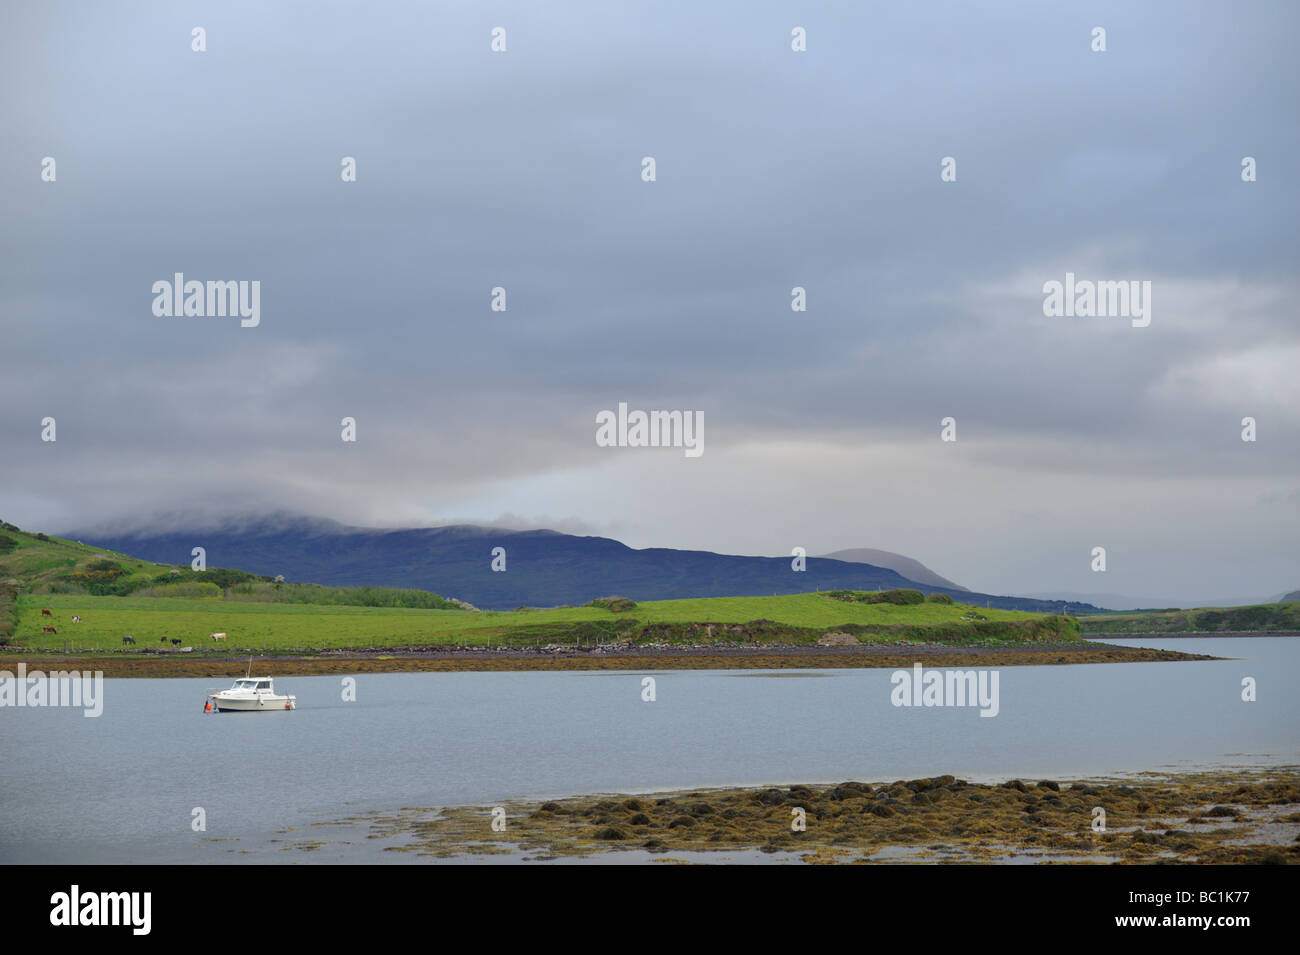 Clew bay under an overcast sky with Croagh Patrick in background and boat in County Mayo Ireland - Stock Image